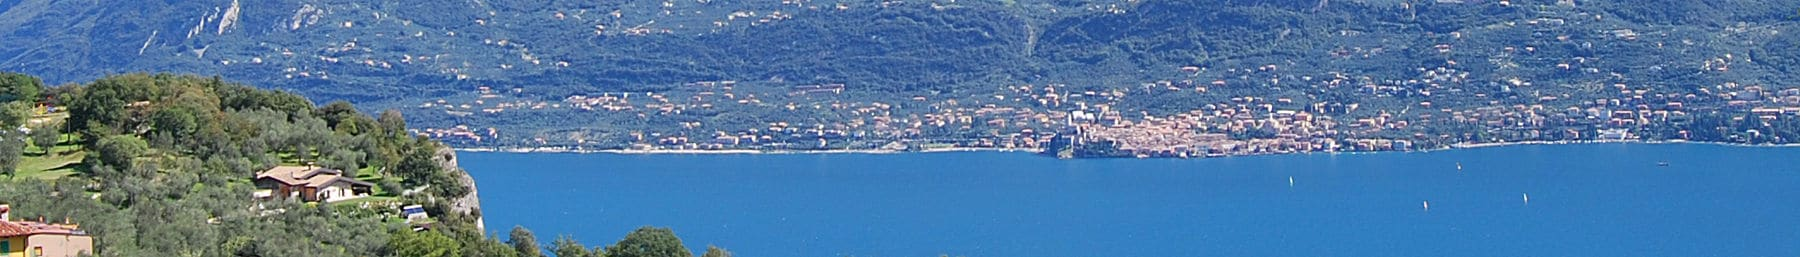 1800px-Lake_Garda_banner_Coast_across_lake